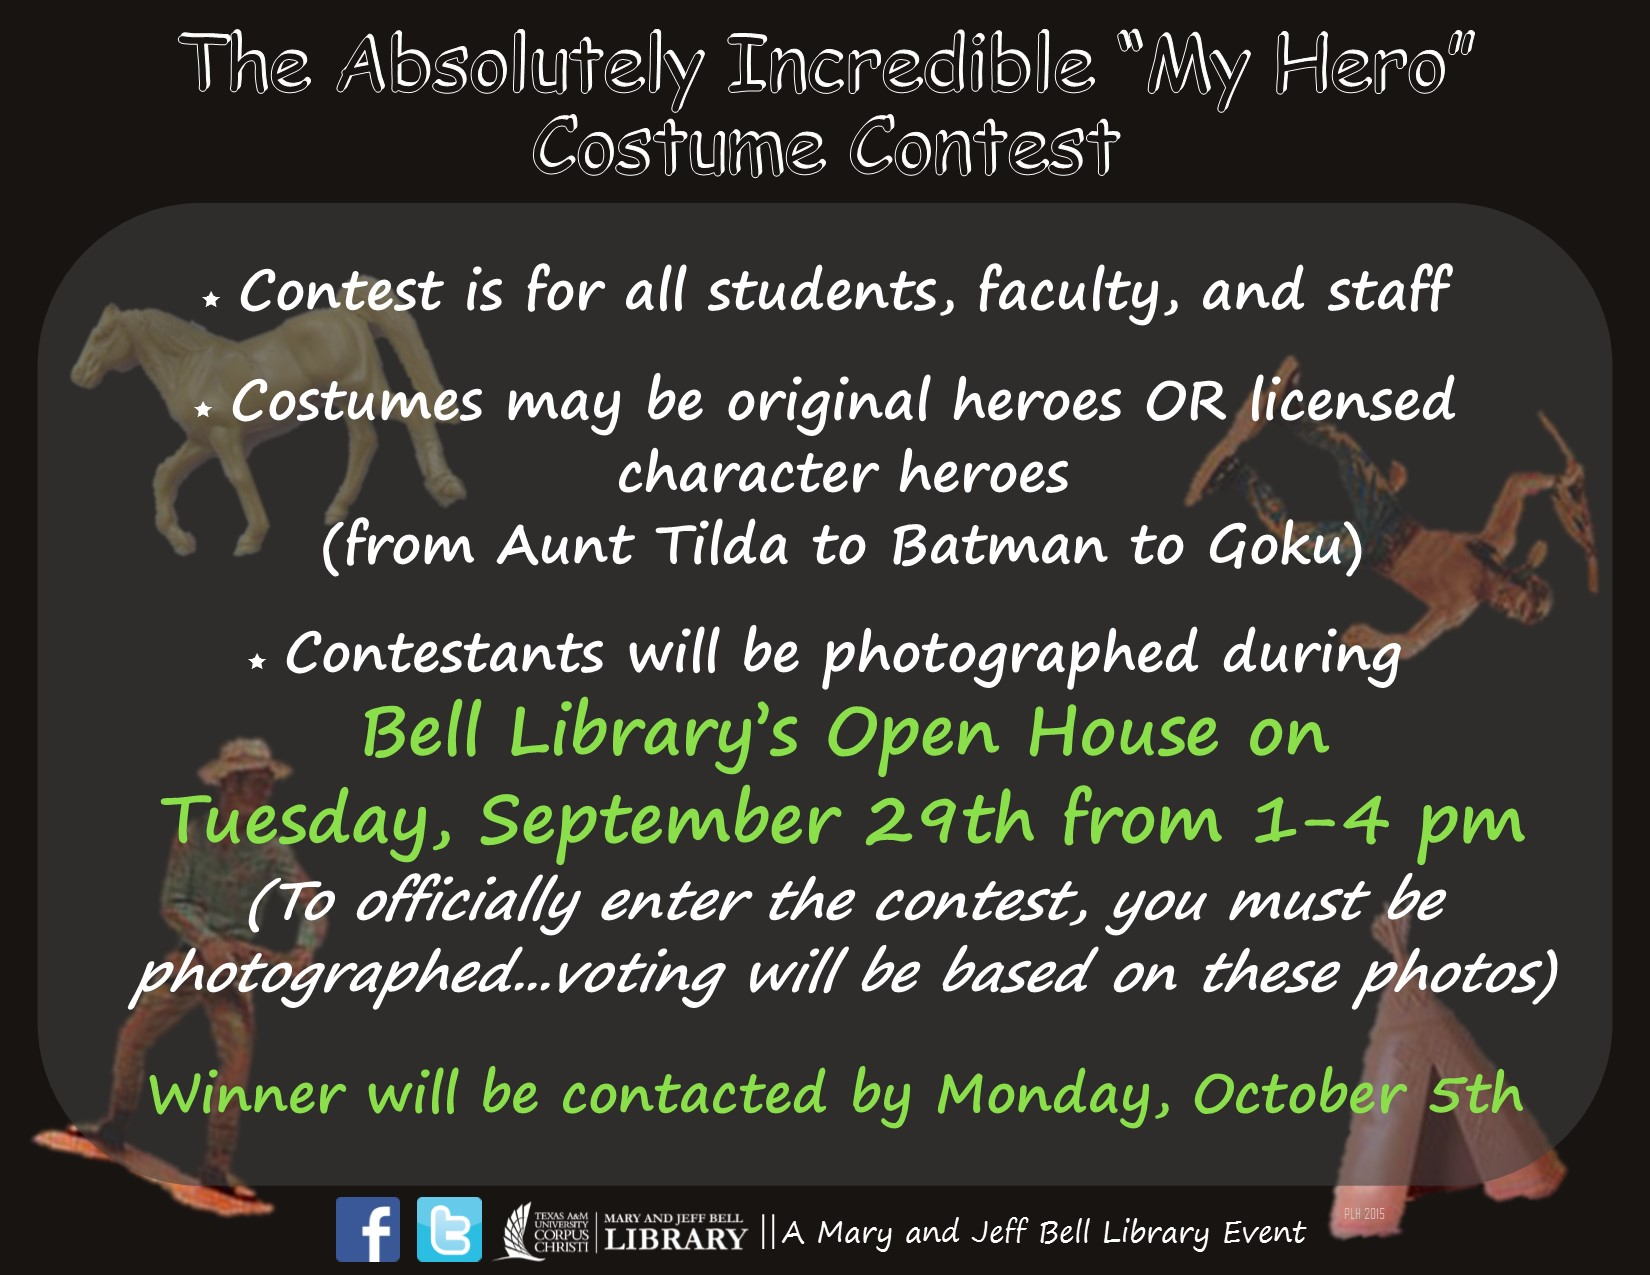 costume contest rules - bell library open house 2015 - research